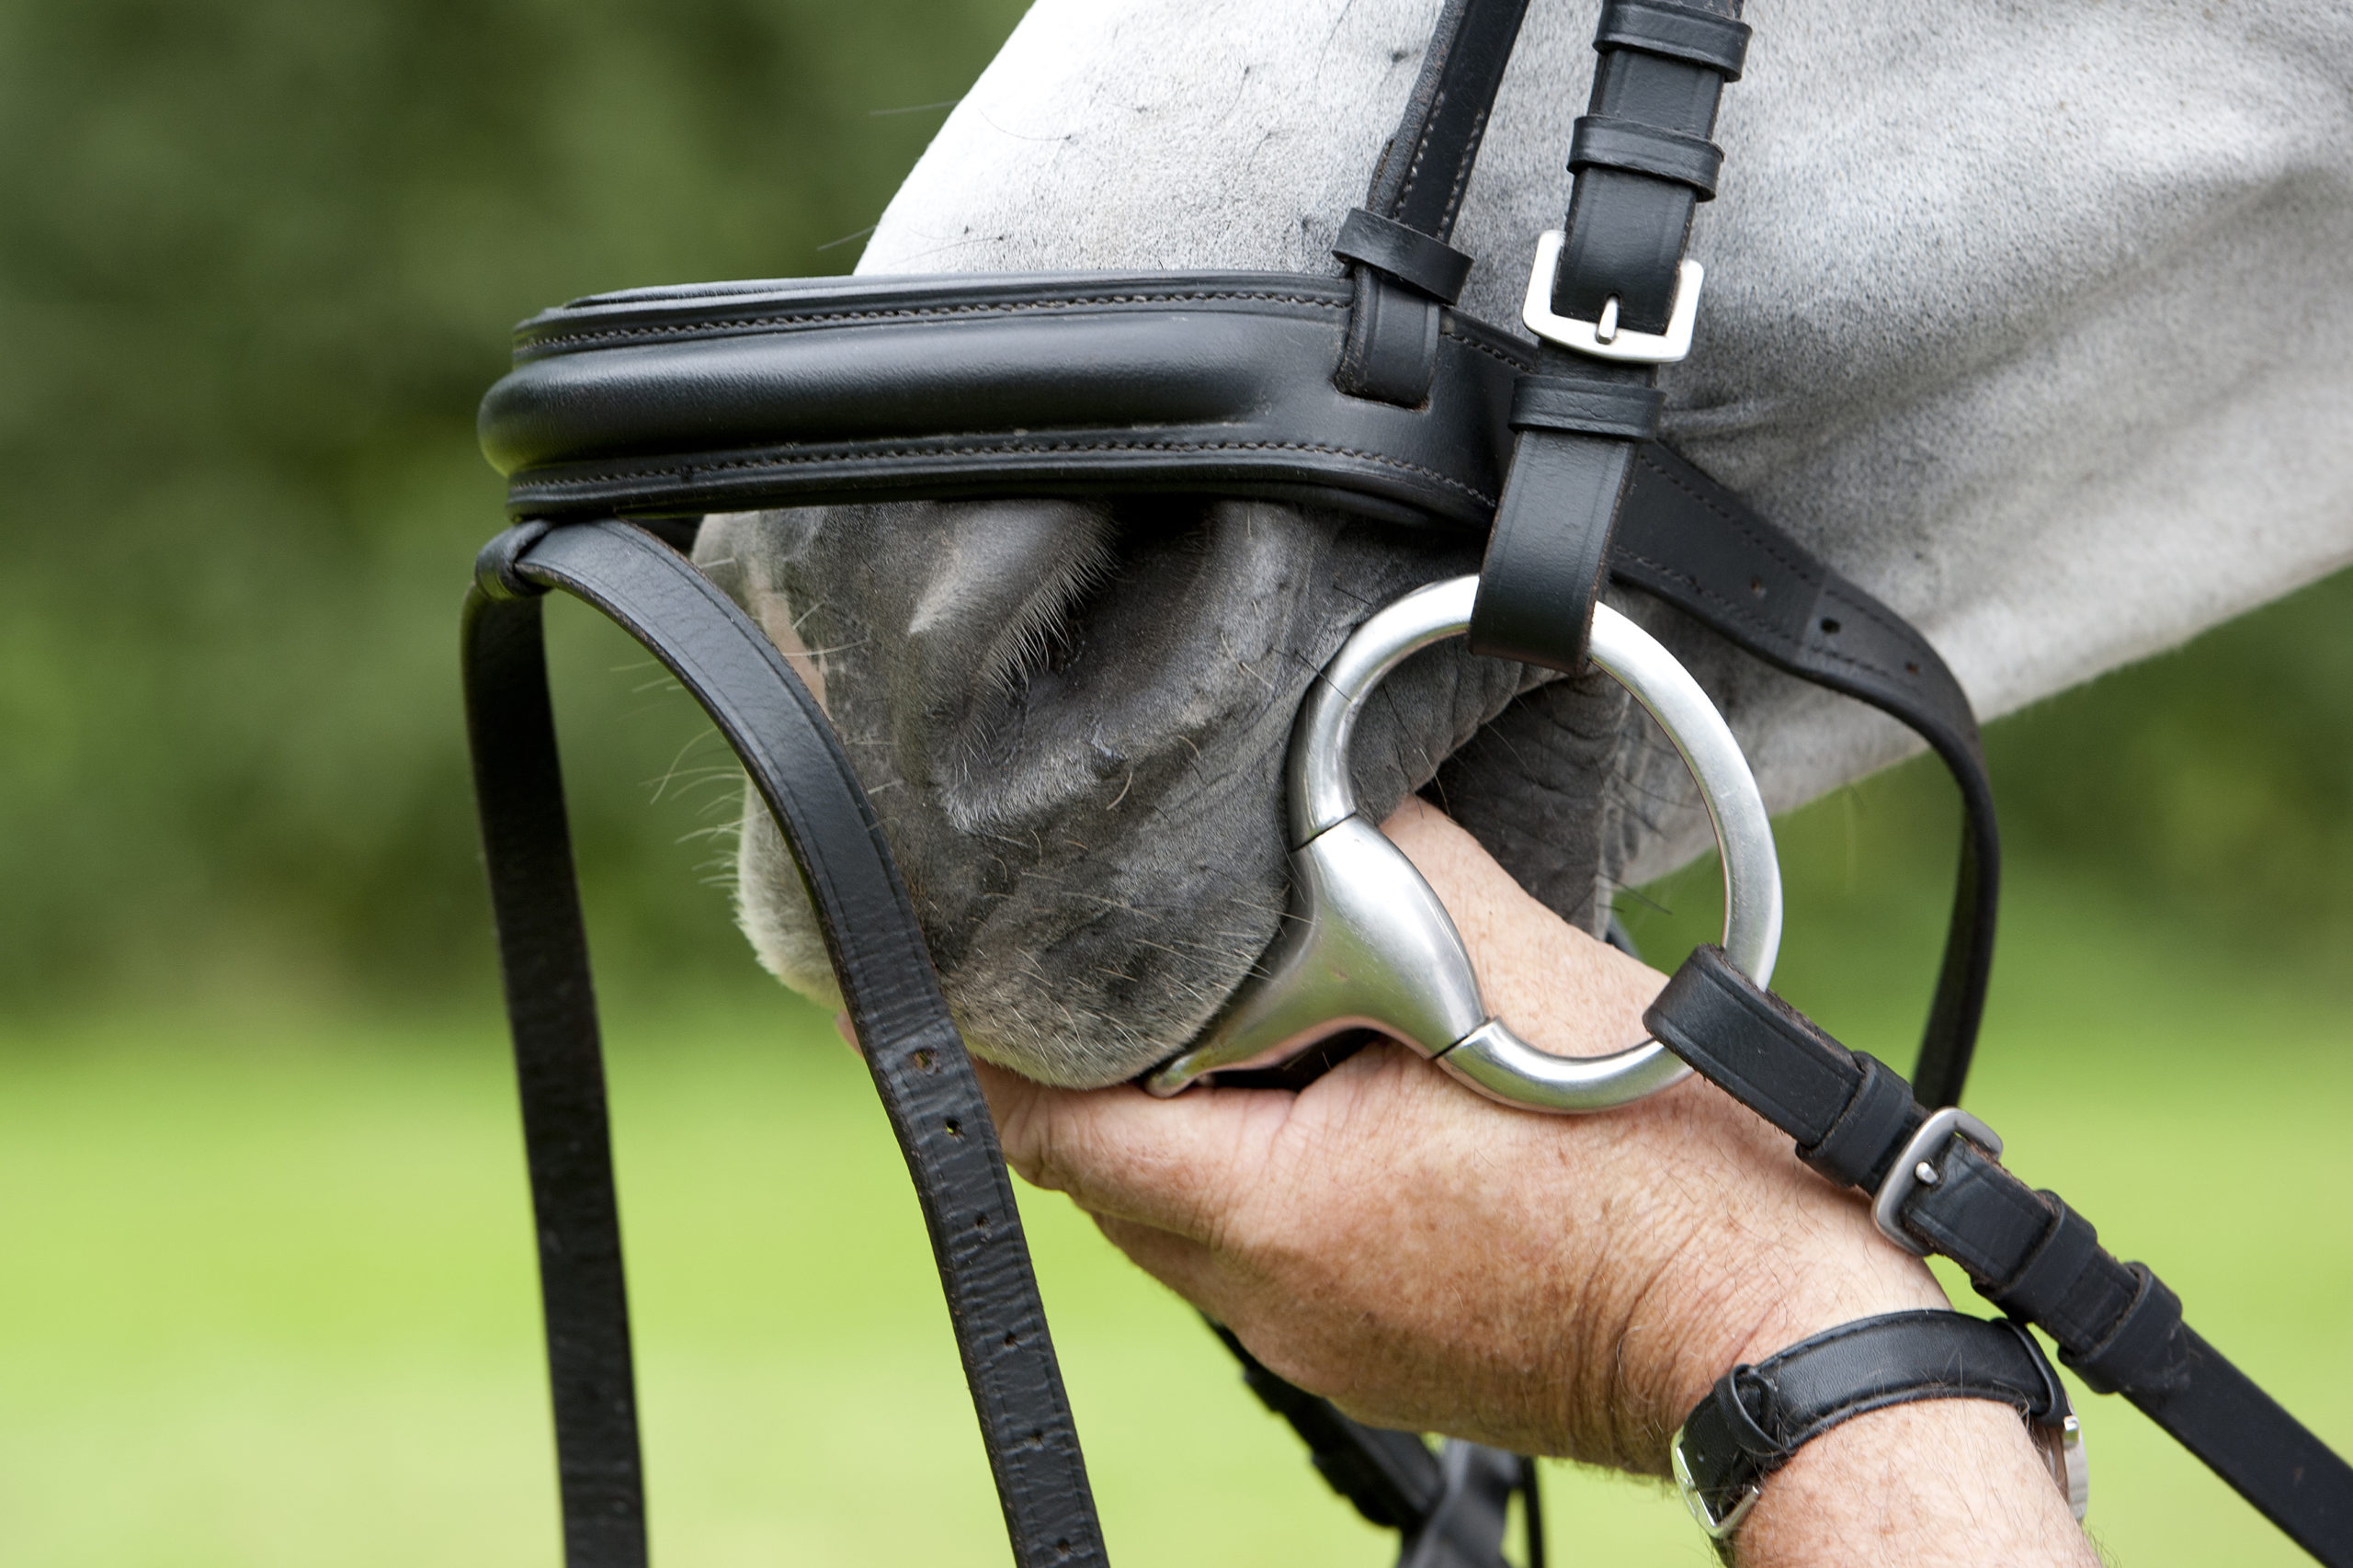 What is the best bit for a young horse?